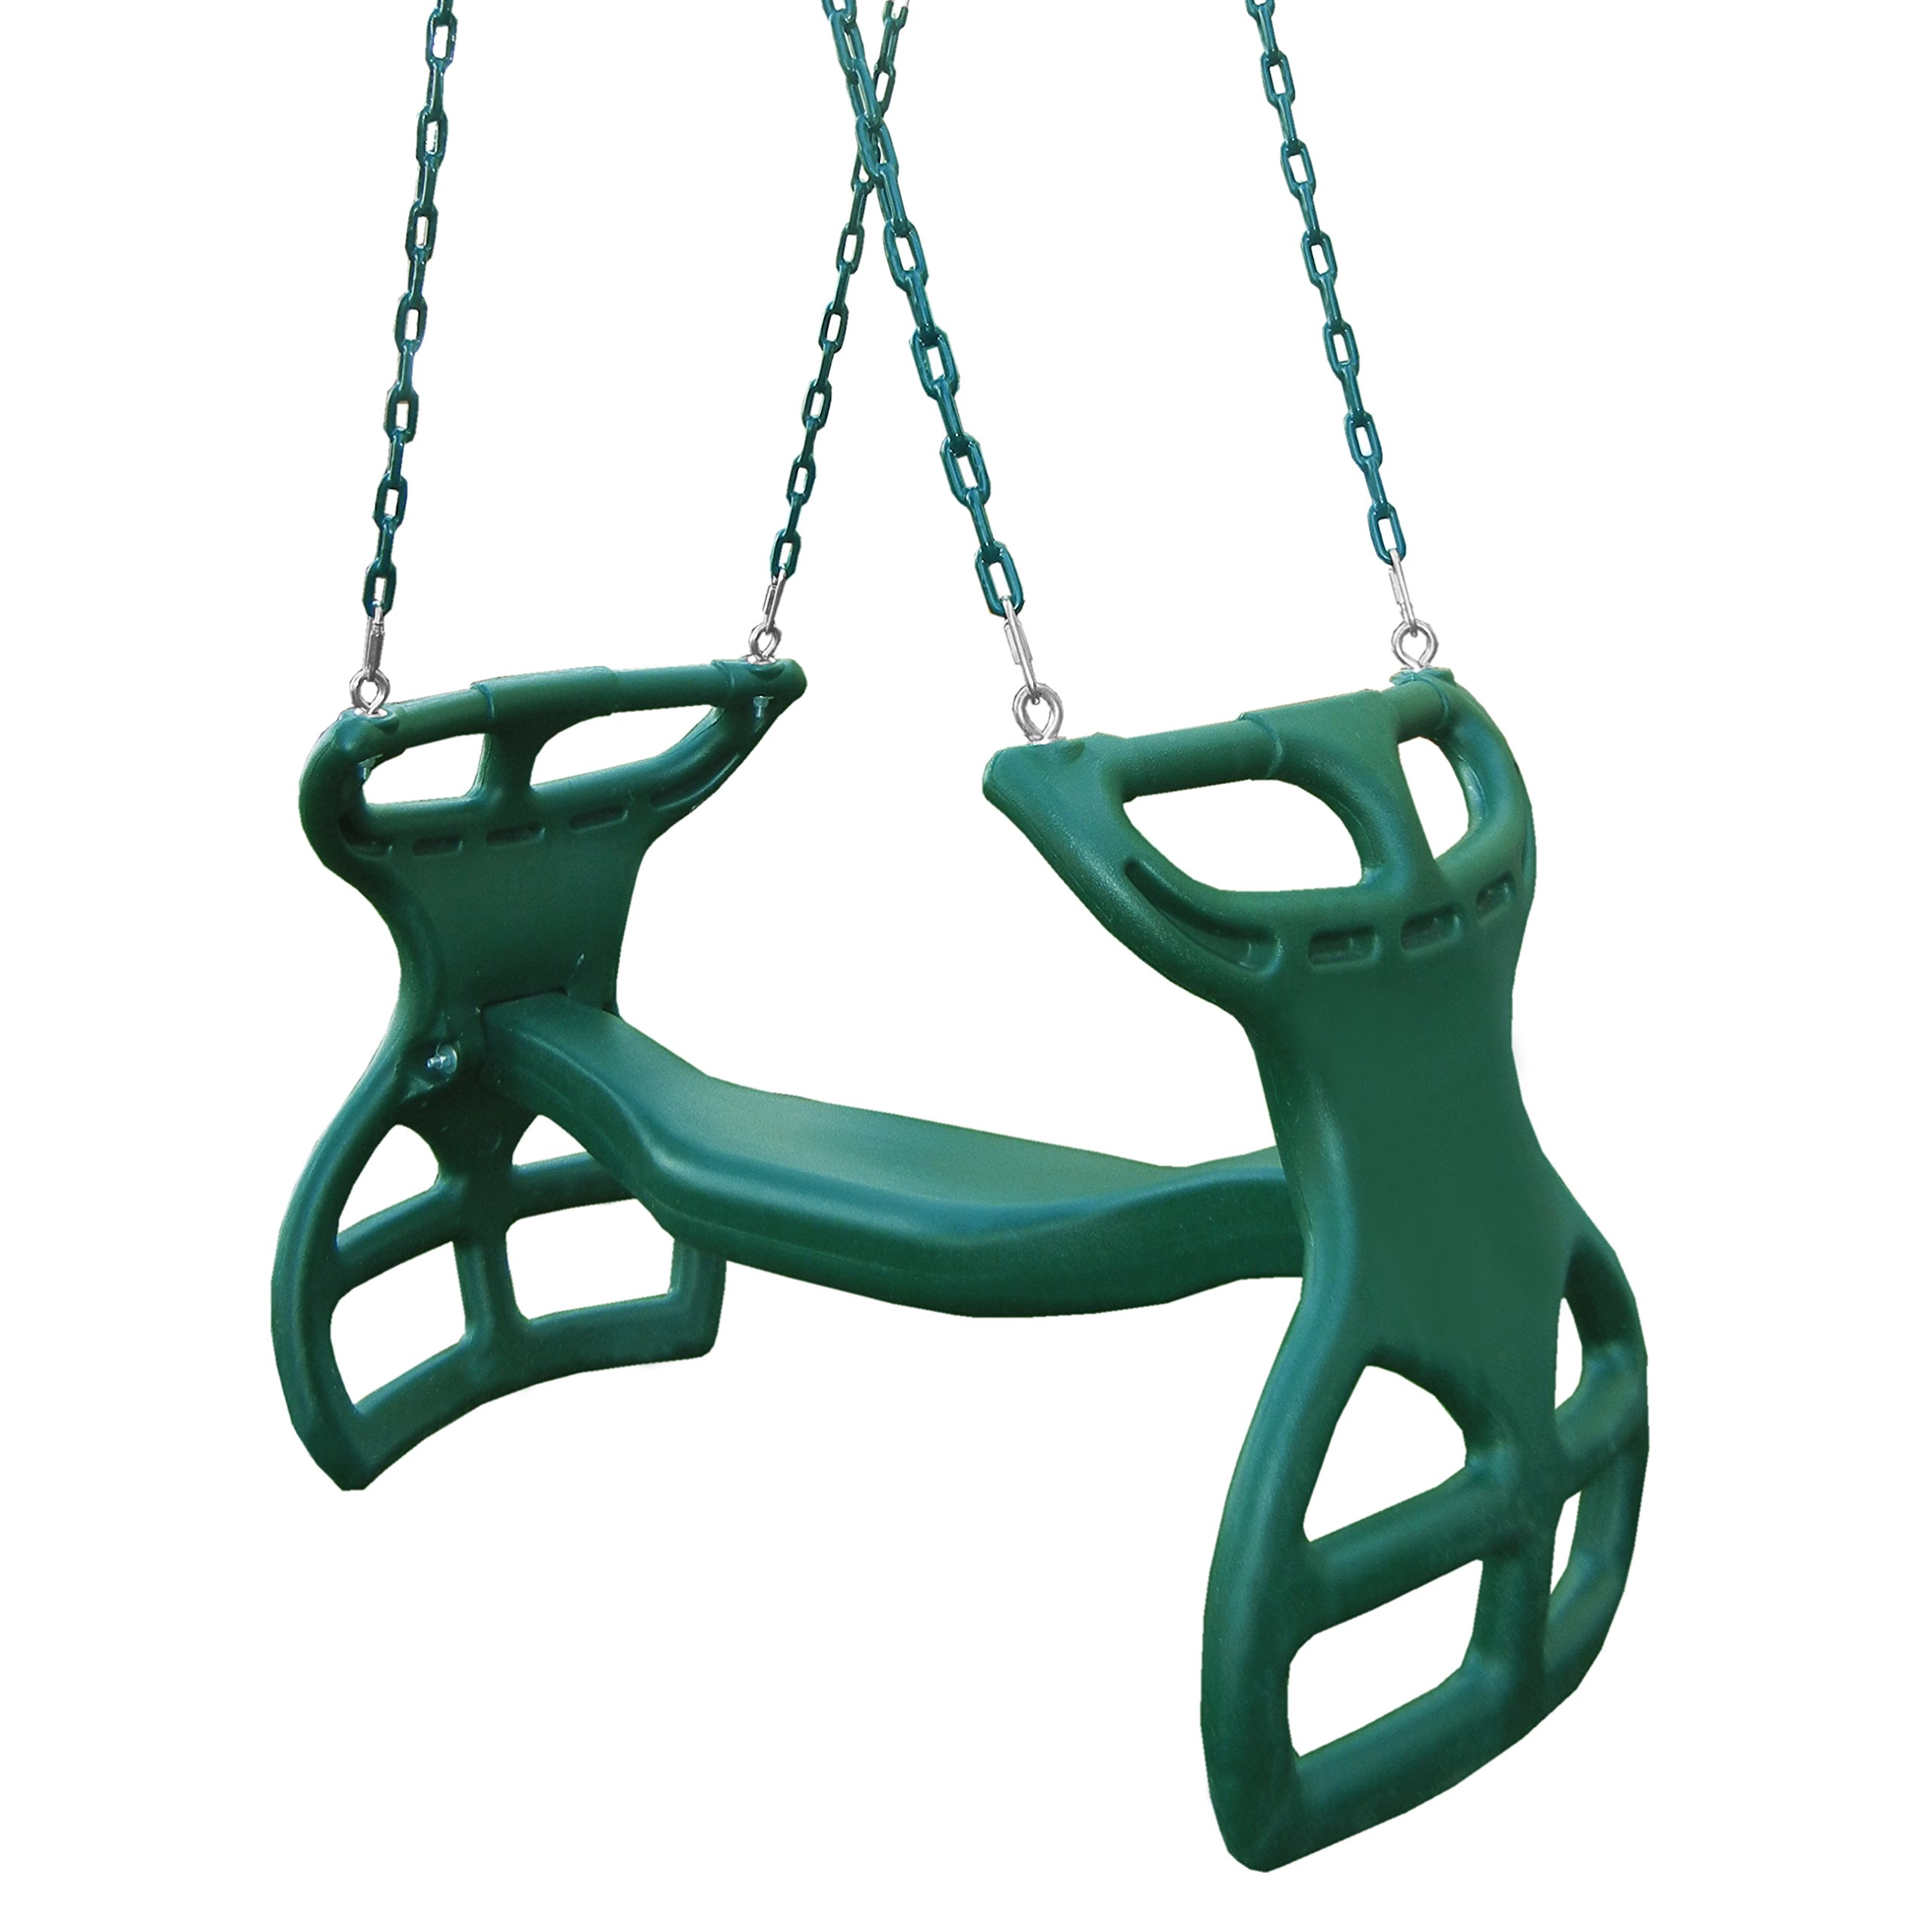 Swing-N-Slide WS 3452 Heavy Duty Two Person Dual Glider Swing, with Coated Chains to Prevent Pinching, 18'' W x 25 in H x 40'' L, Green by Swing-N-Slide